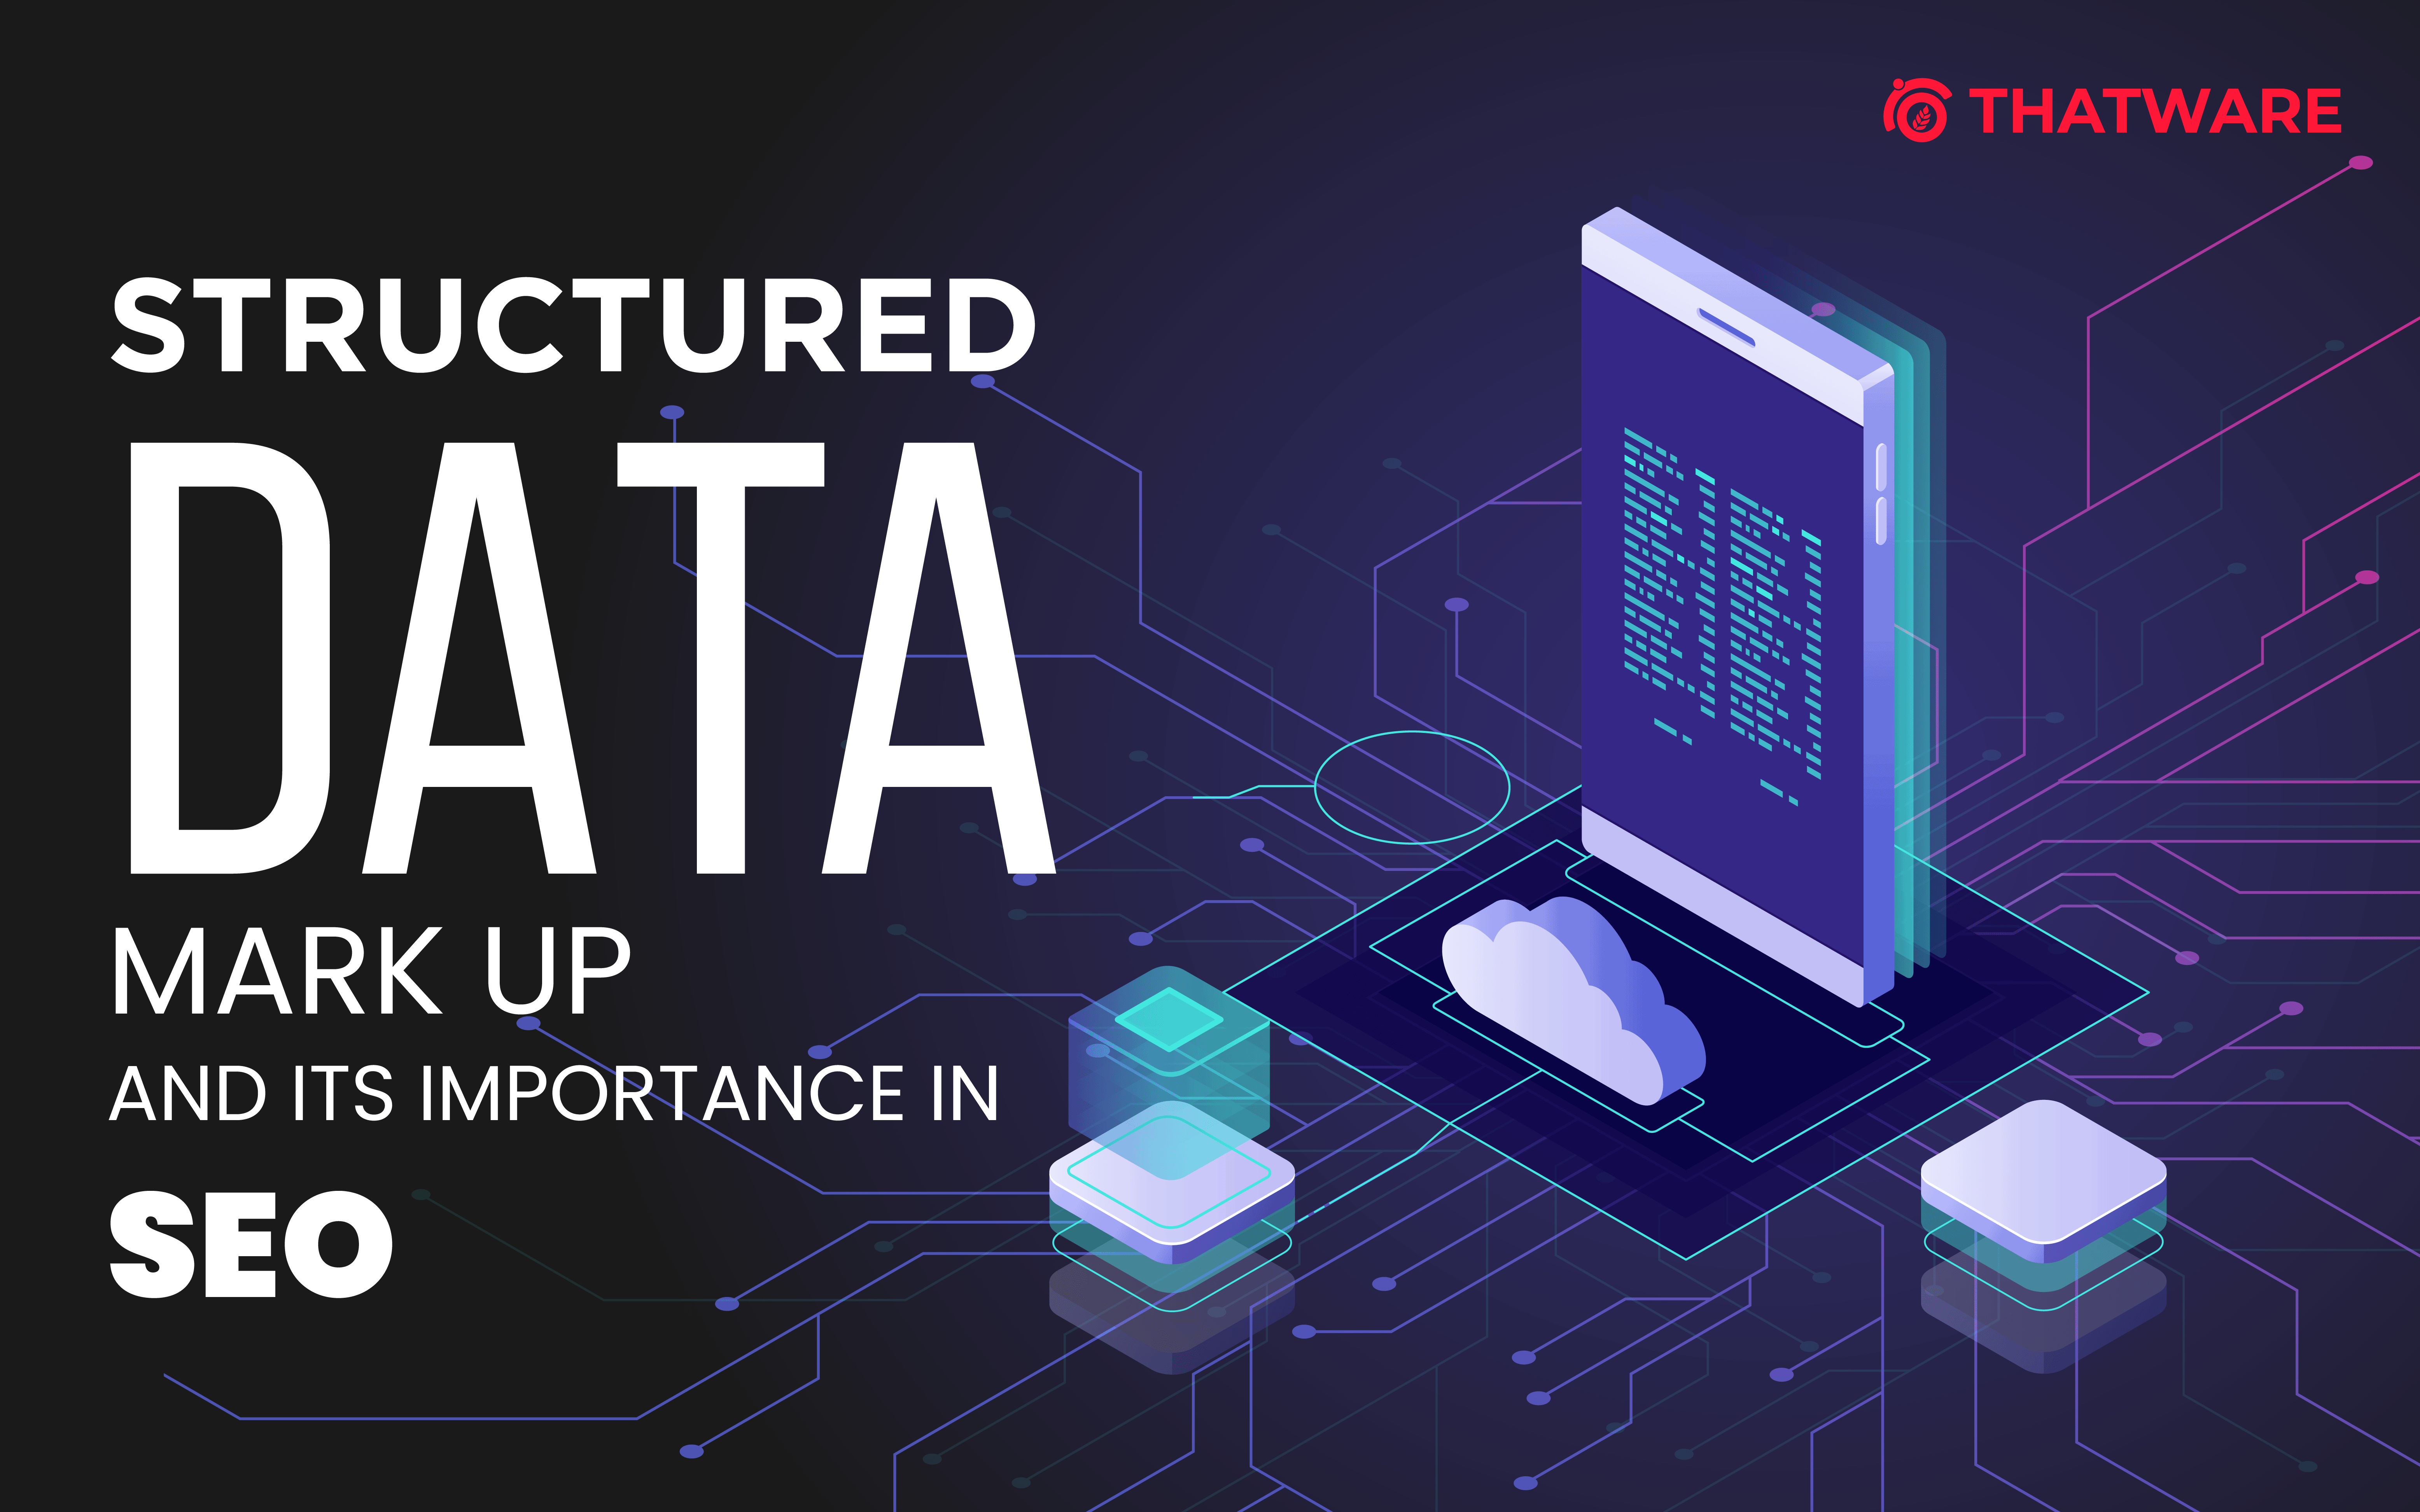 Importance of Structured Data Mark-Up